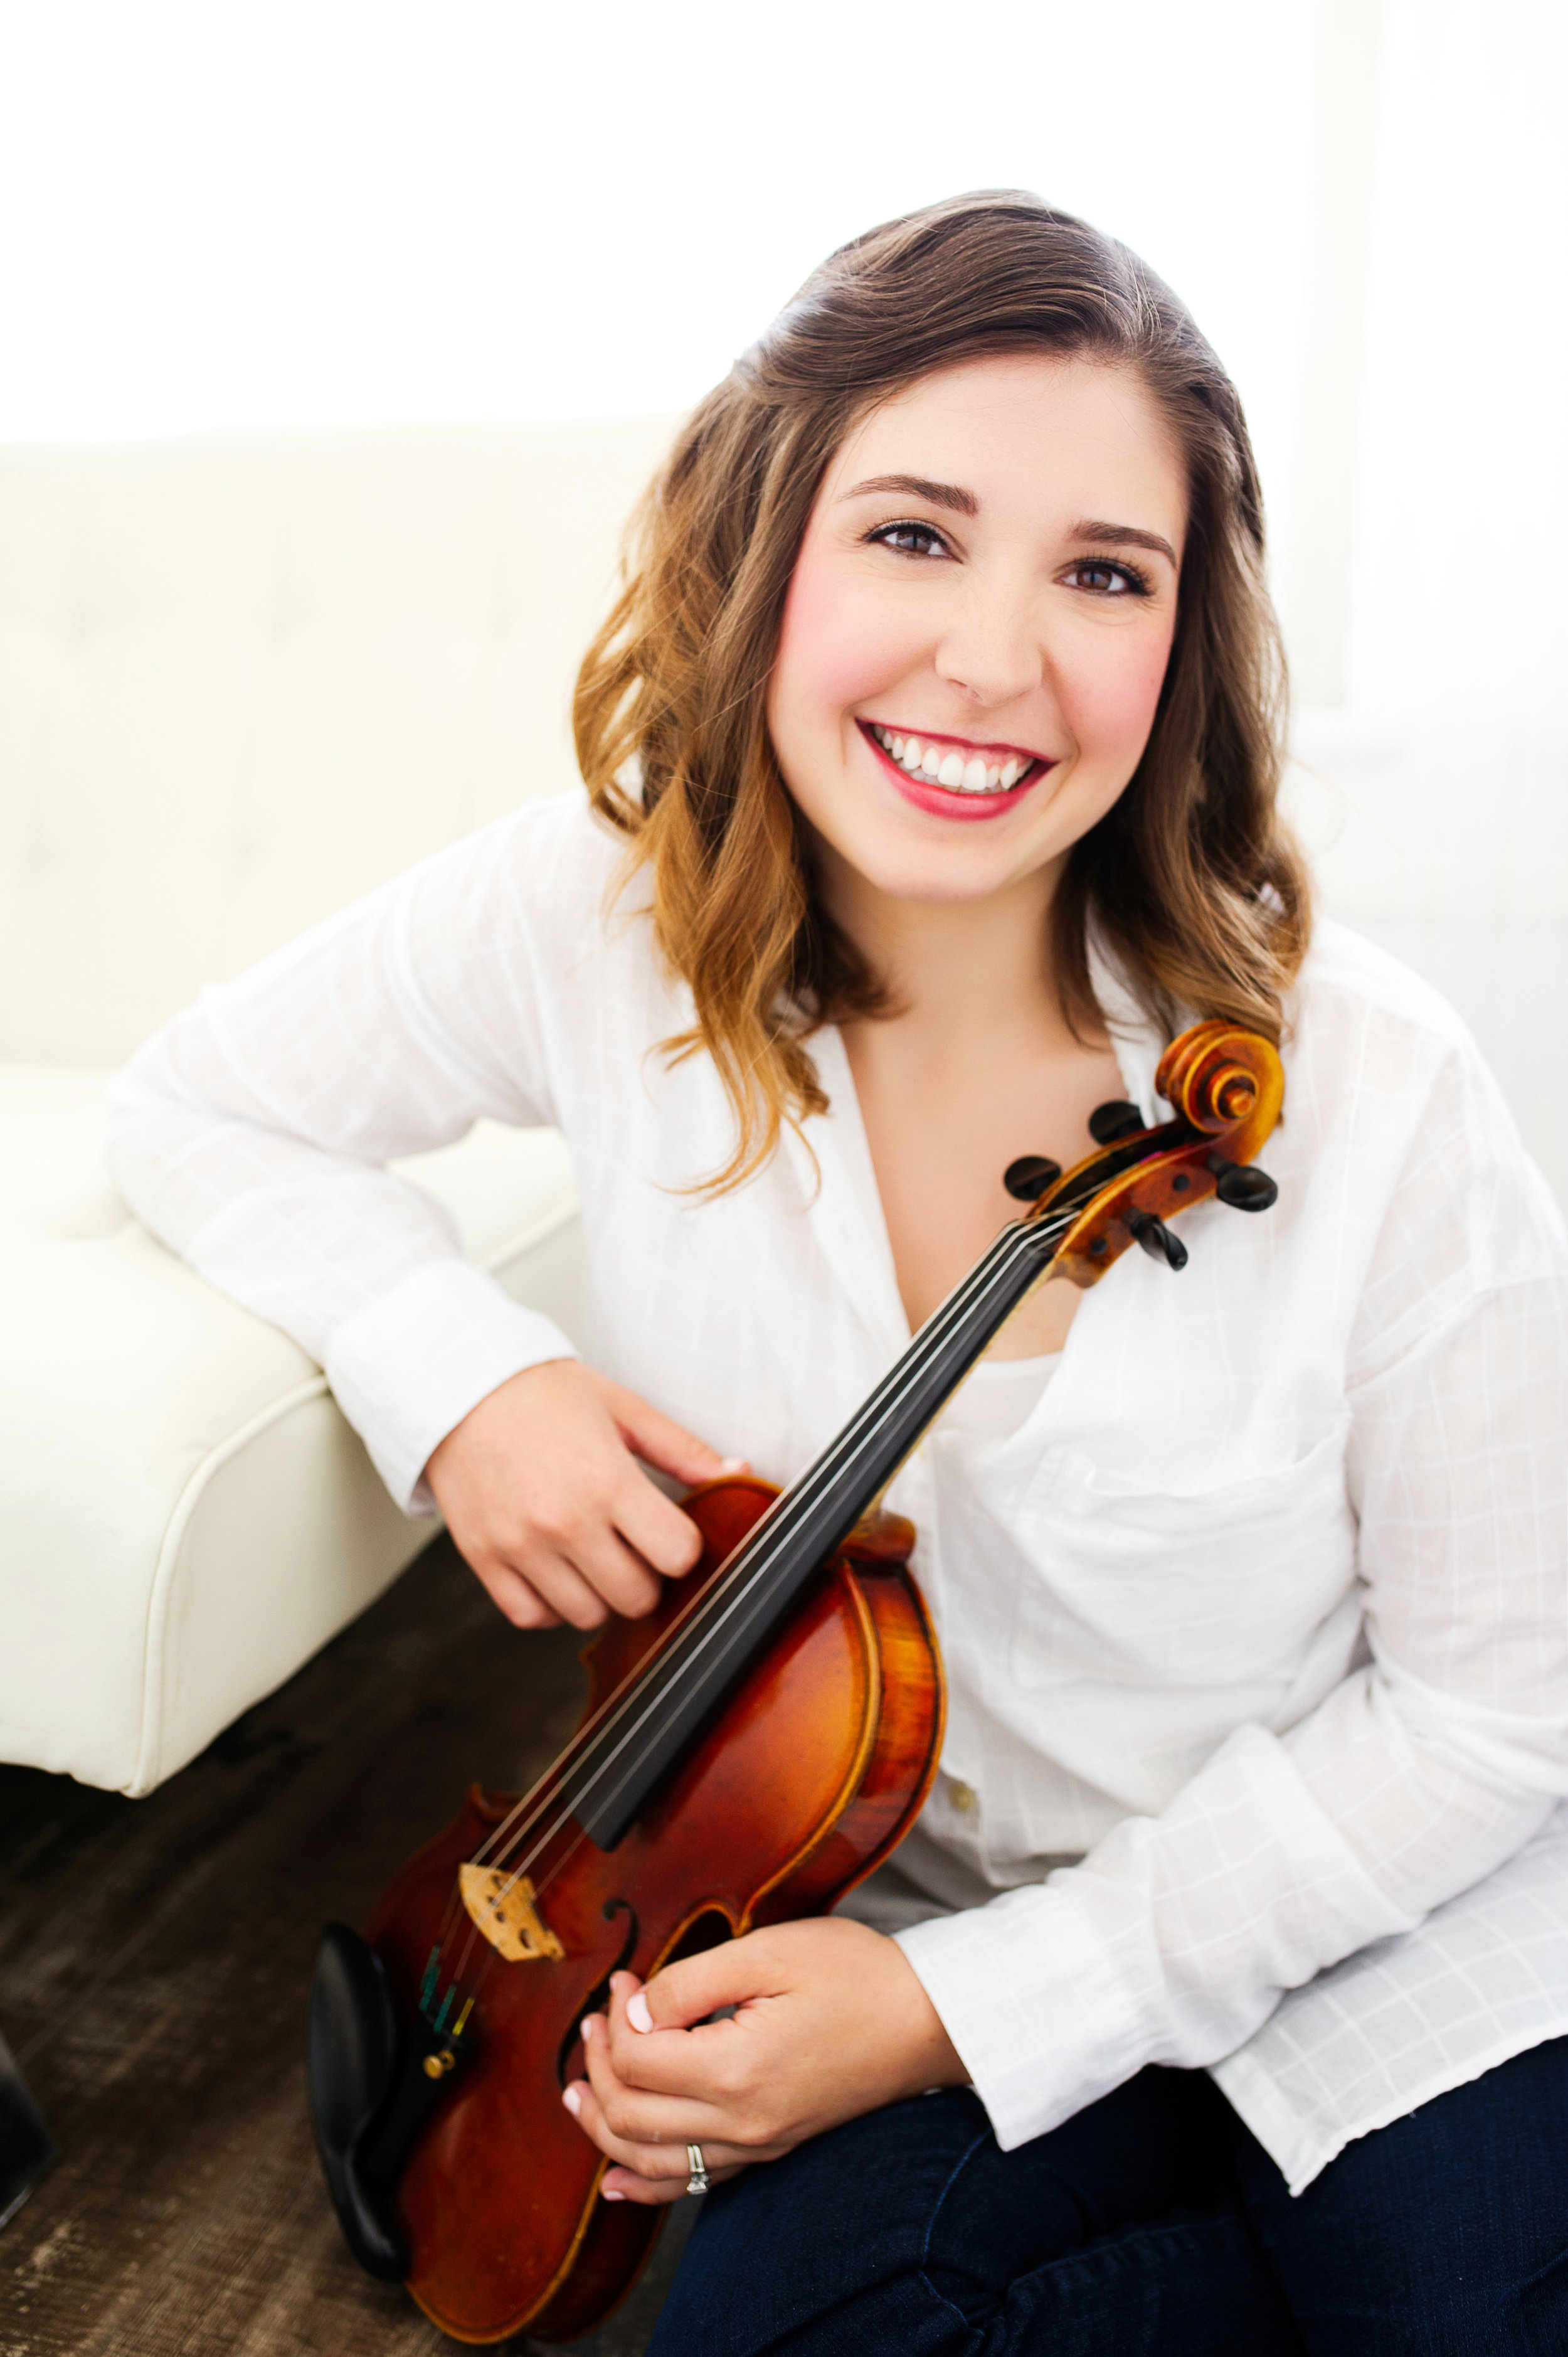 Abigail Peterson, Violin Teacher and Owner of Abellimento Violin Studio | Suzuki Violin Lessons, Milwaukee, WI